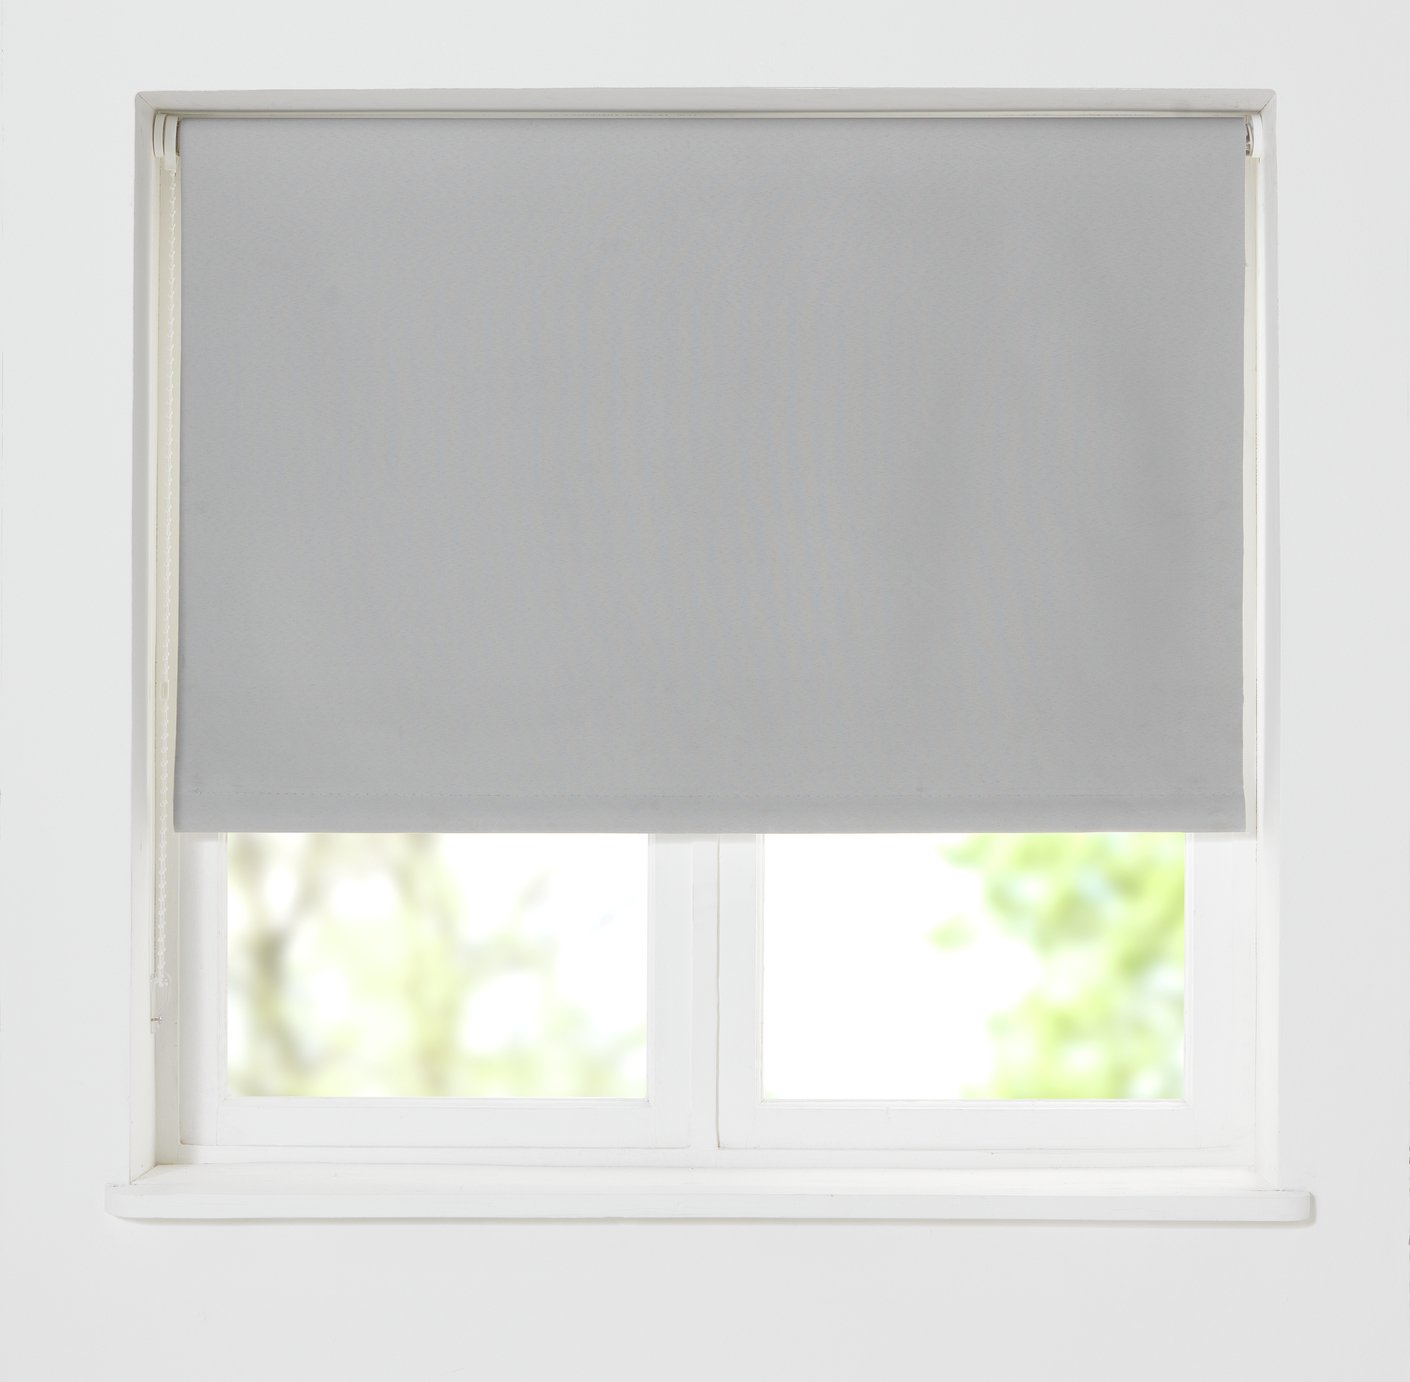 Image of ColourMatch Blackout Thermal Roller Blind - 4ft - Dove Grey